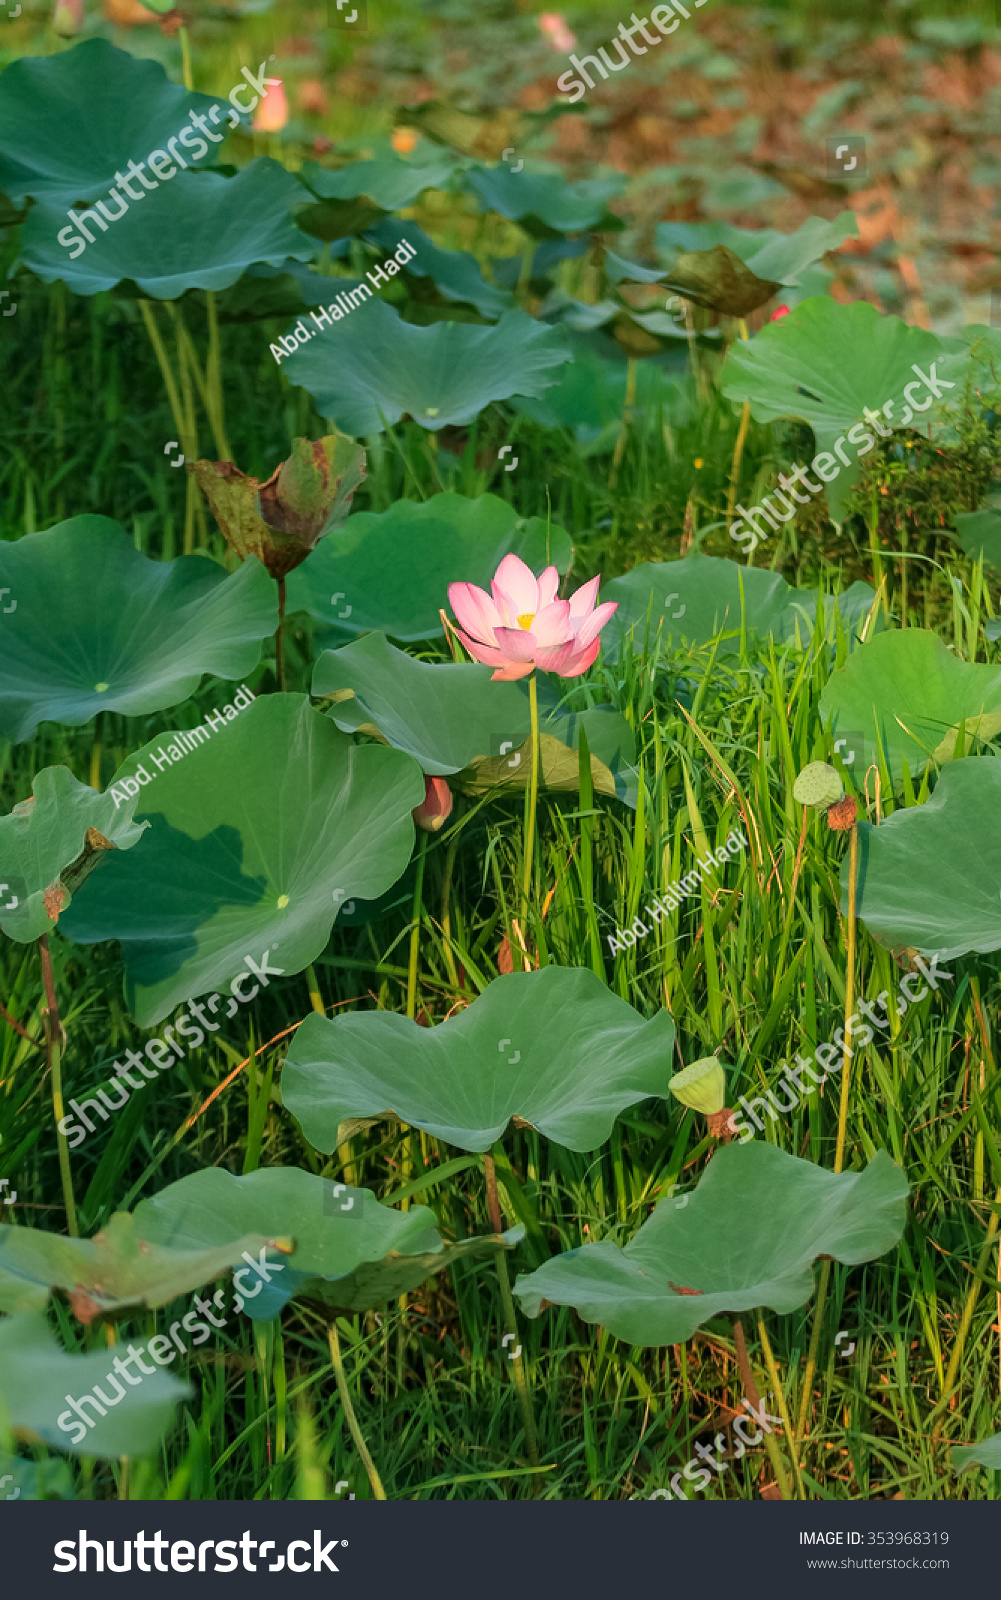 Lotus flower natural habitat stock photo royalty free 353968319 lotus flower in its natural habitat mightylinksfo Image collections